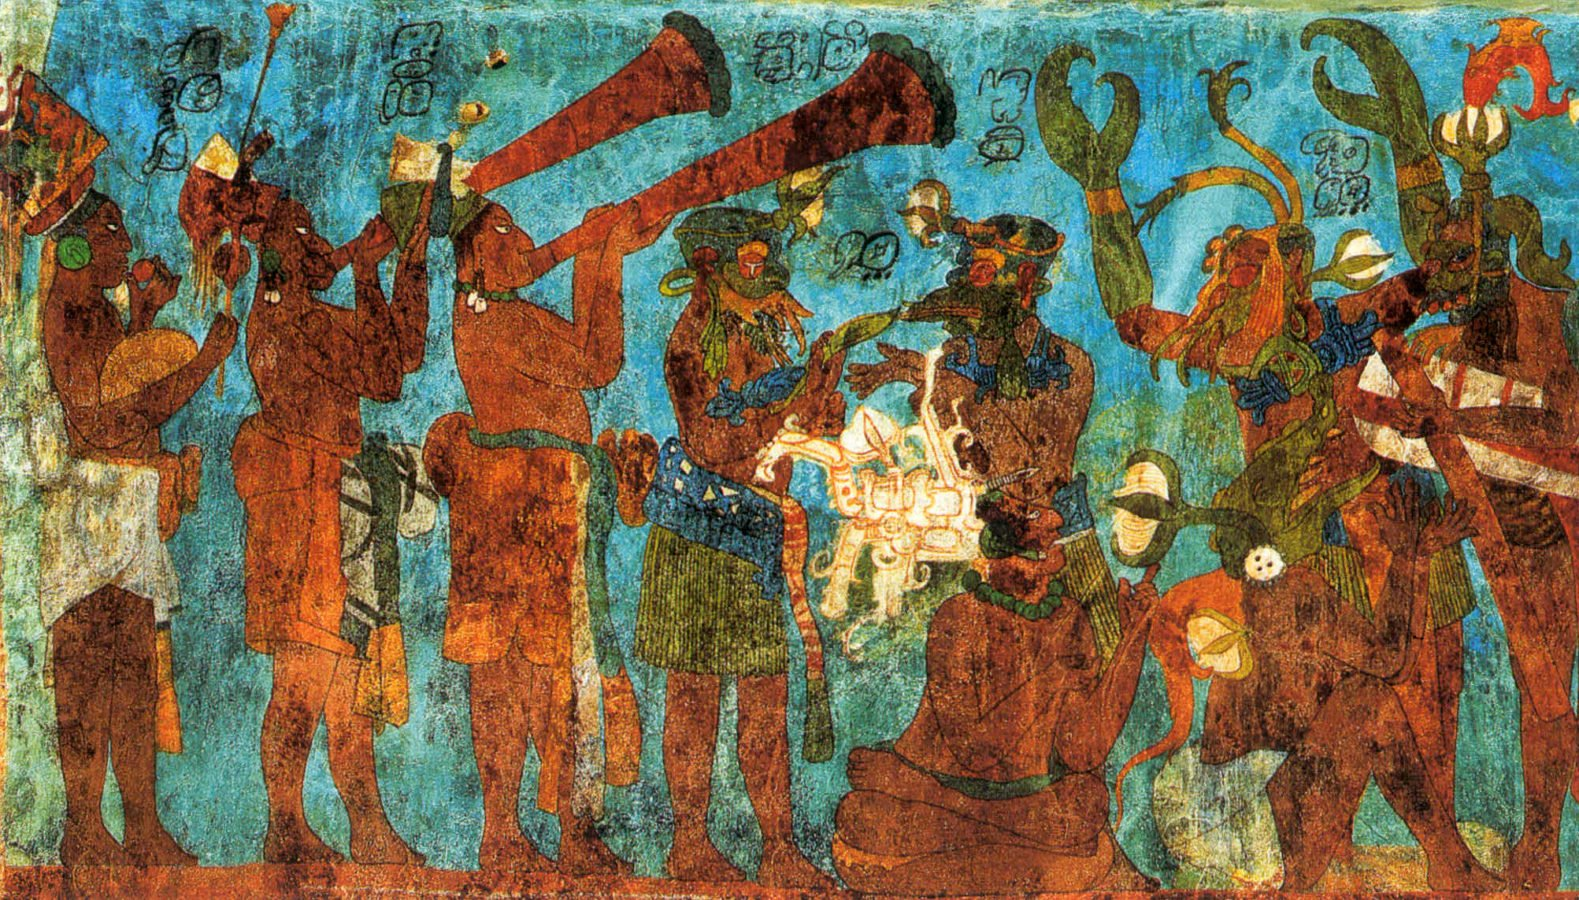 Mural from Bonampak, unknown Mayan artist, 8th century AD, Chiapas, Mexico, The History of Mexico in Murals